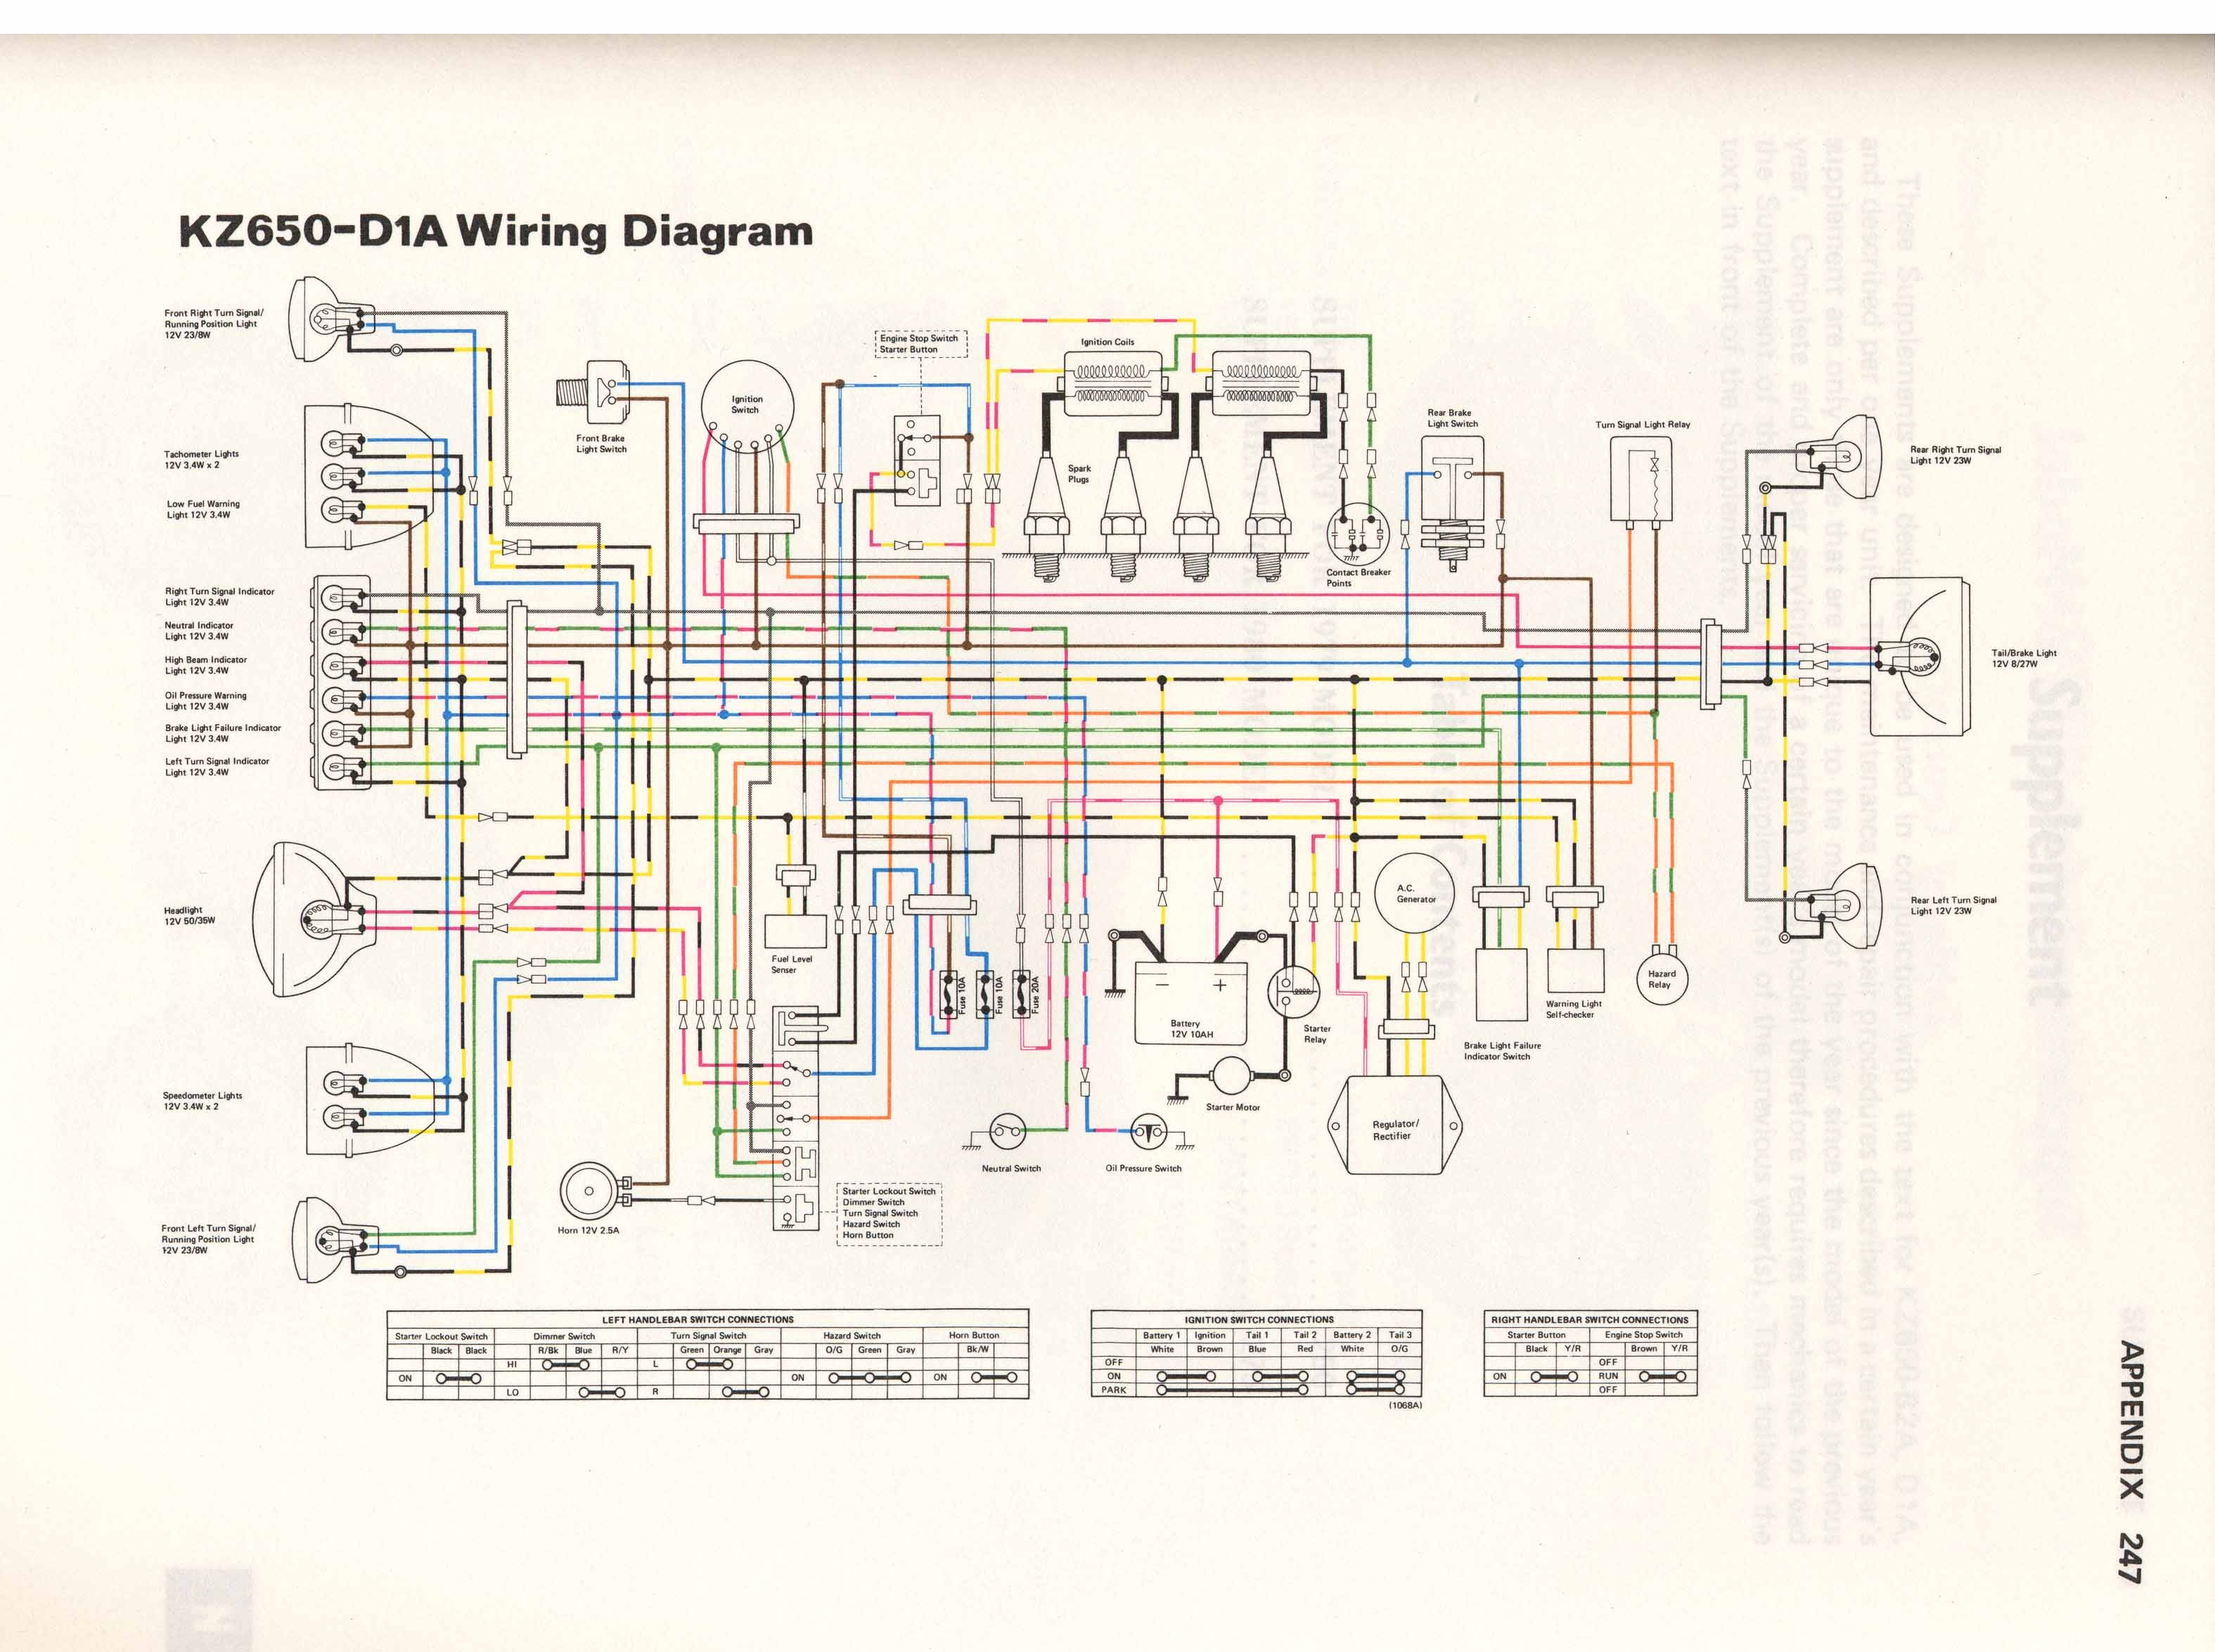 Harley Engine Diagram Kawasaki Kz750 Twin Wiring Diagram Moreover ford Radio Wiring Of Harley Engine Diagram